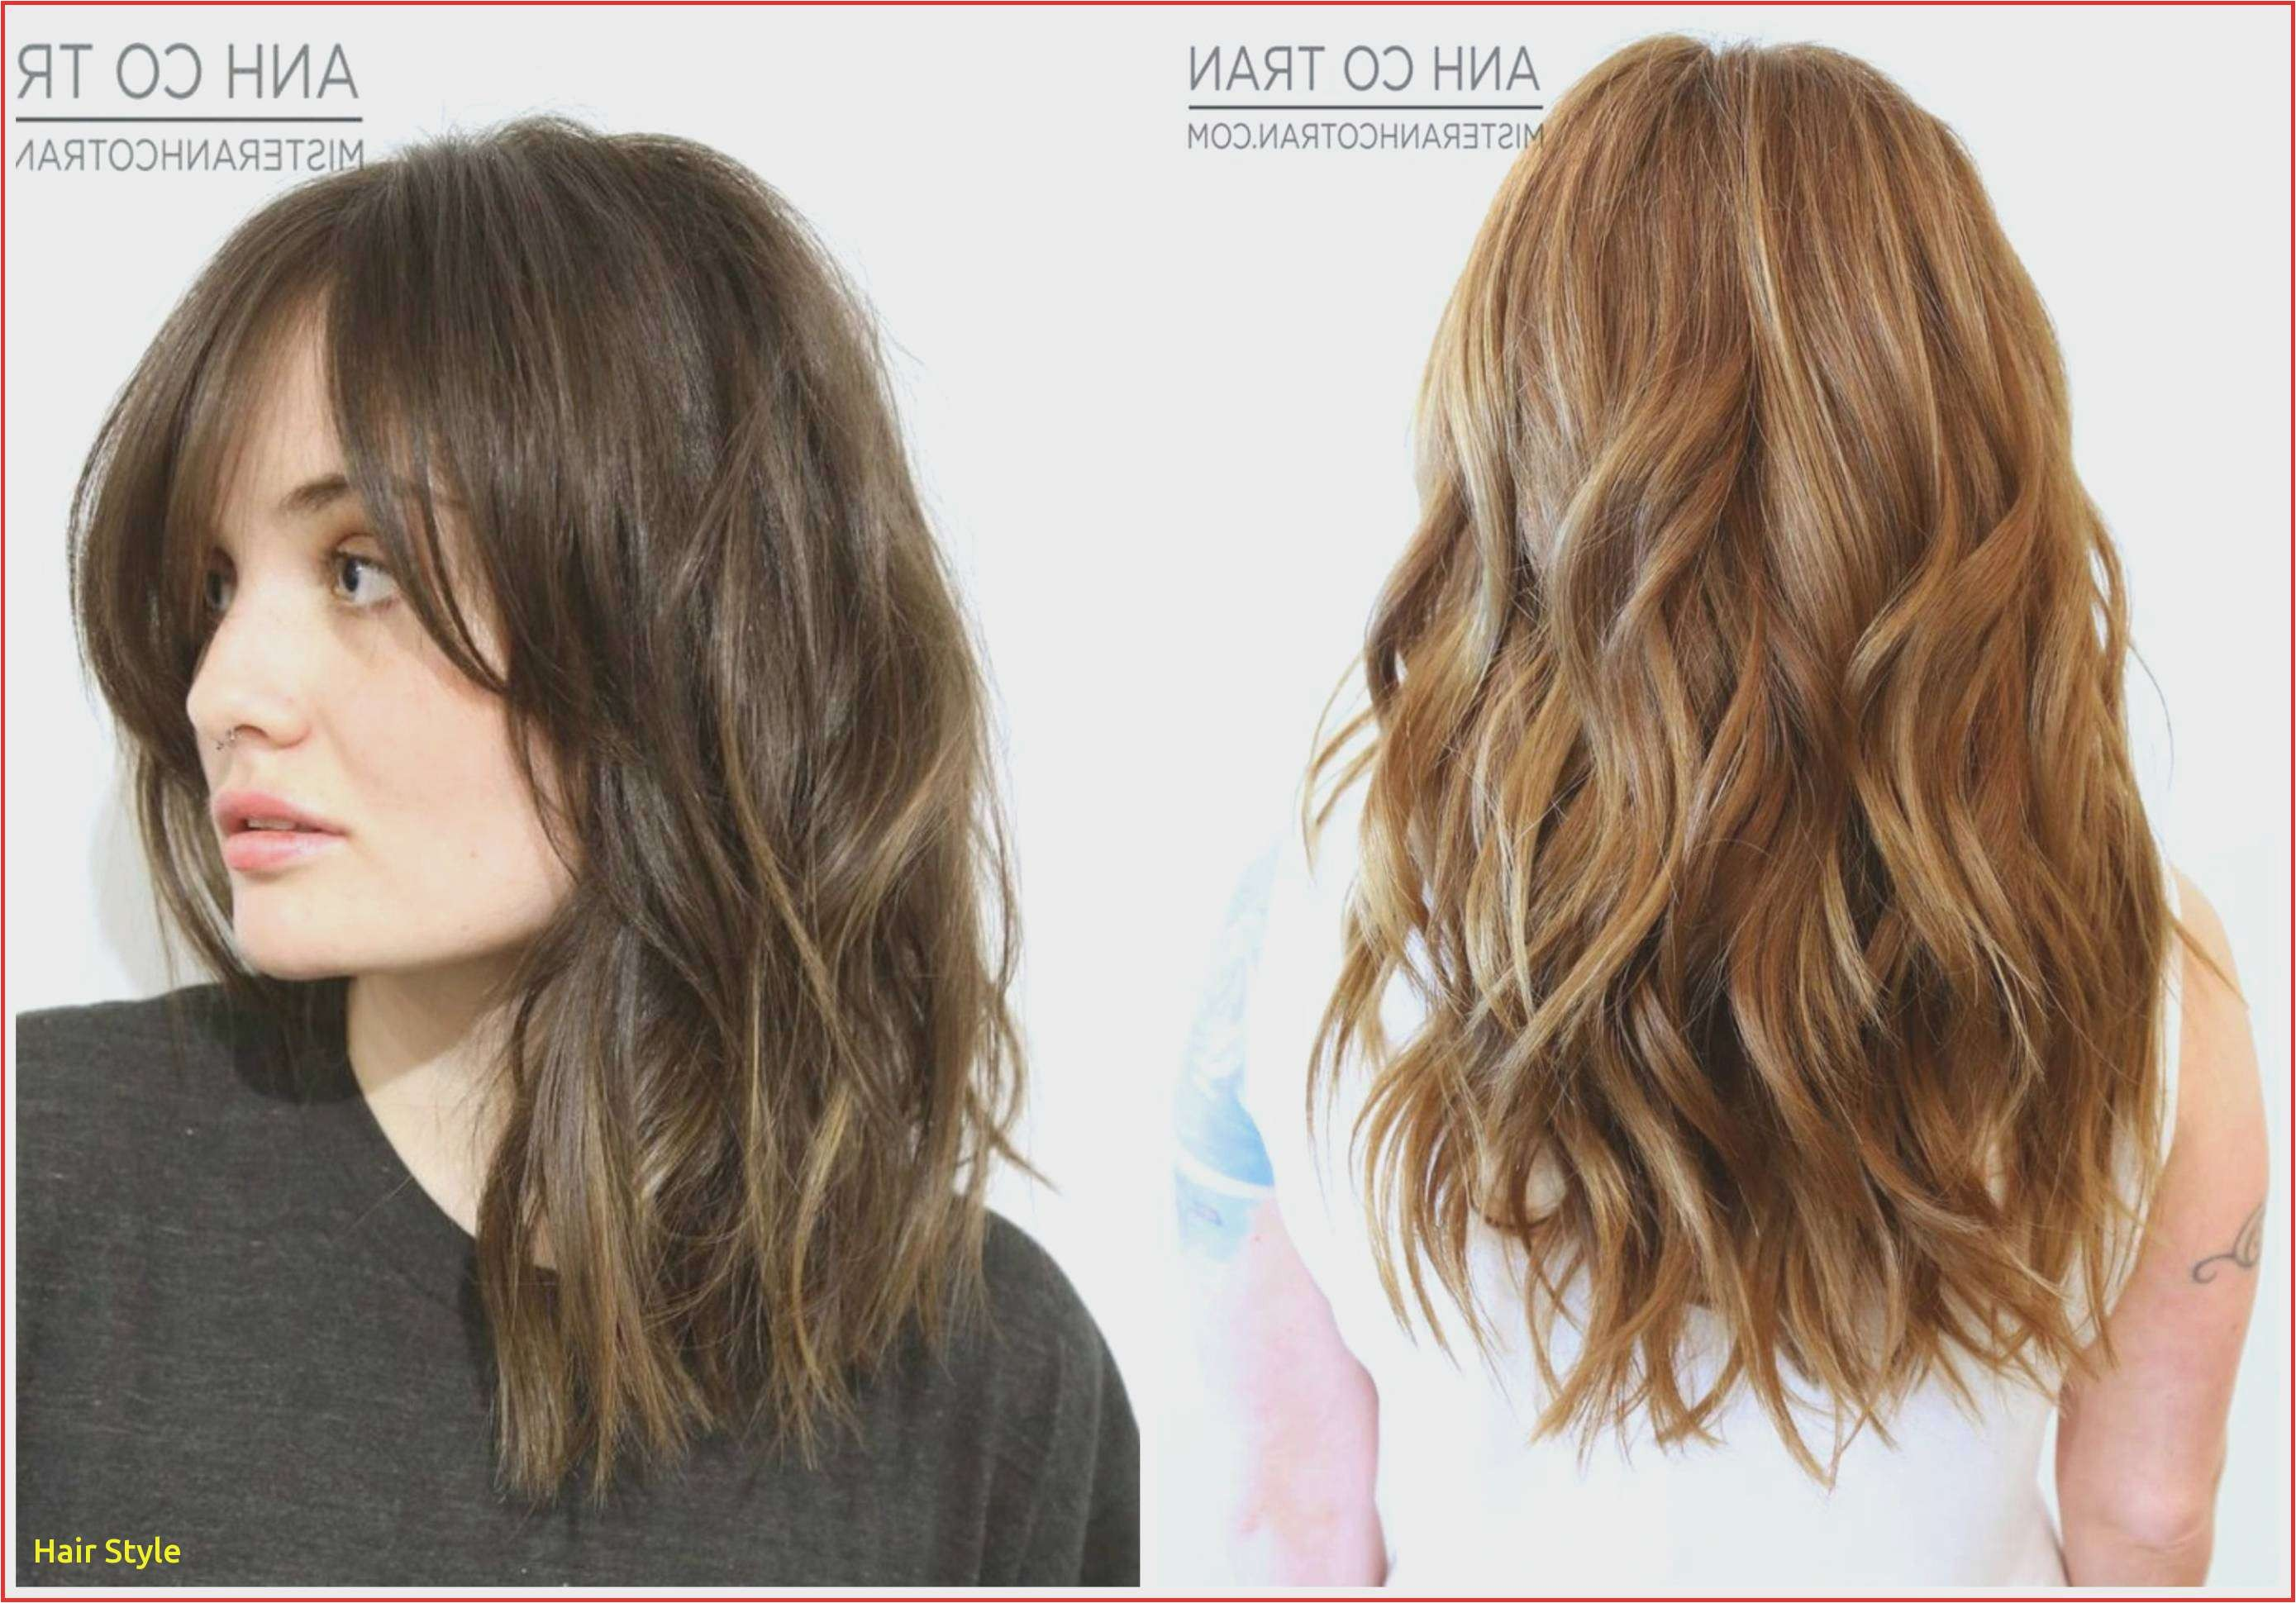 Goth Haircut · Hairstyle Long Layers Lovely Long Layered Cuts